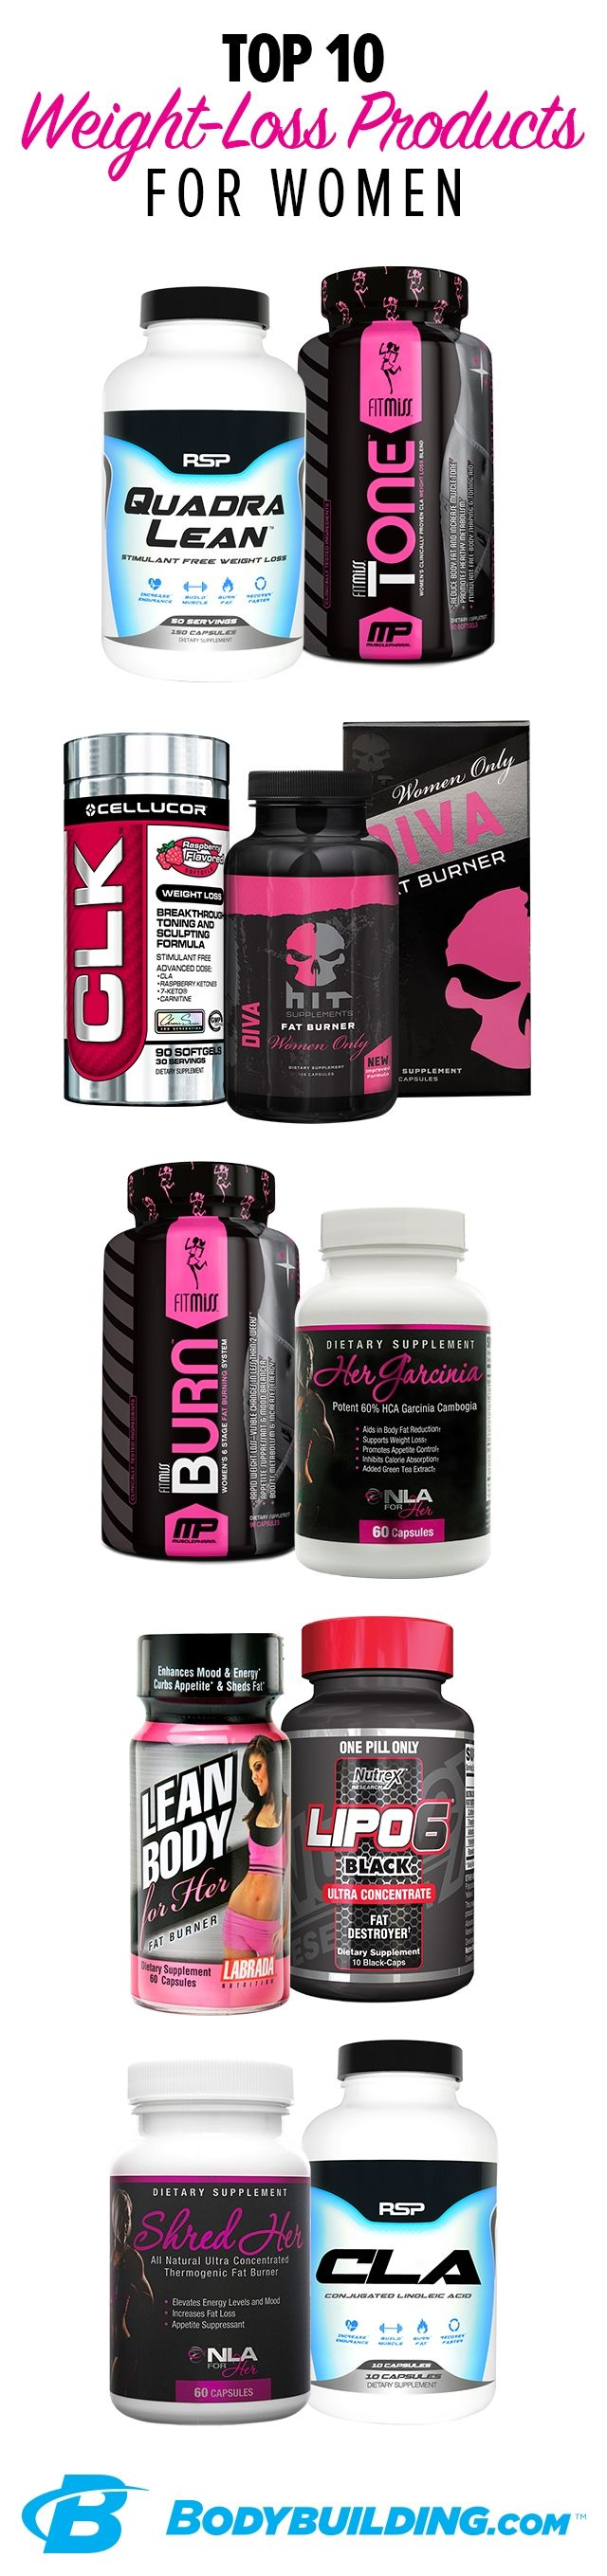 TOP 10 WEIGHT LOSS SUPPLEMENTS FOR WOMEN! Don't let a layer of fat hide your hard-earned lean muscle. Our Top 10 weight loss products can help your body increase metabolism, burn fat as fuel, and cont  supplements for women,supplements,supplements for weightloss,supplements for anxiety,supplements for acne,supplements for health